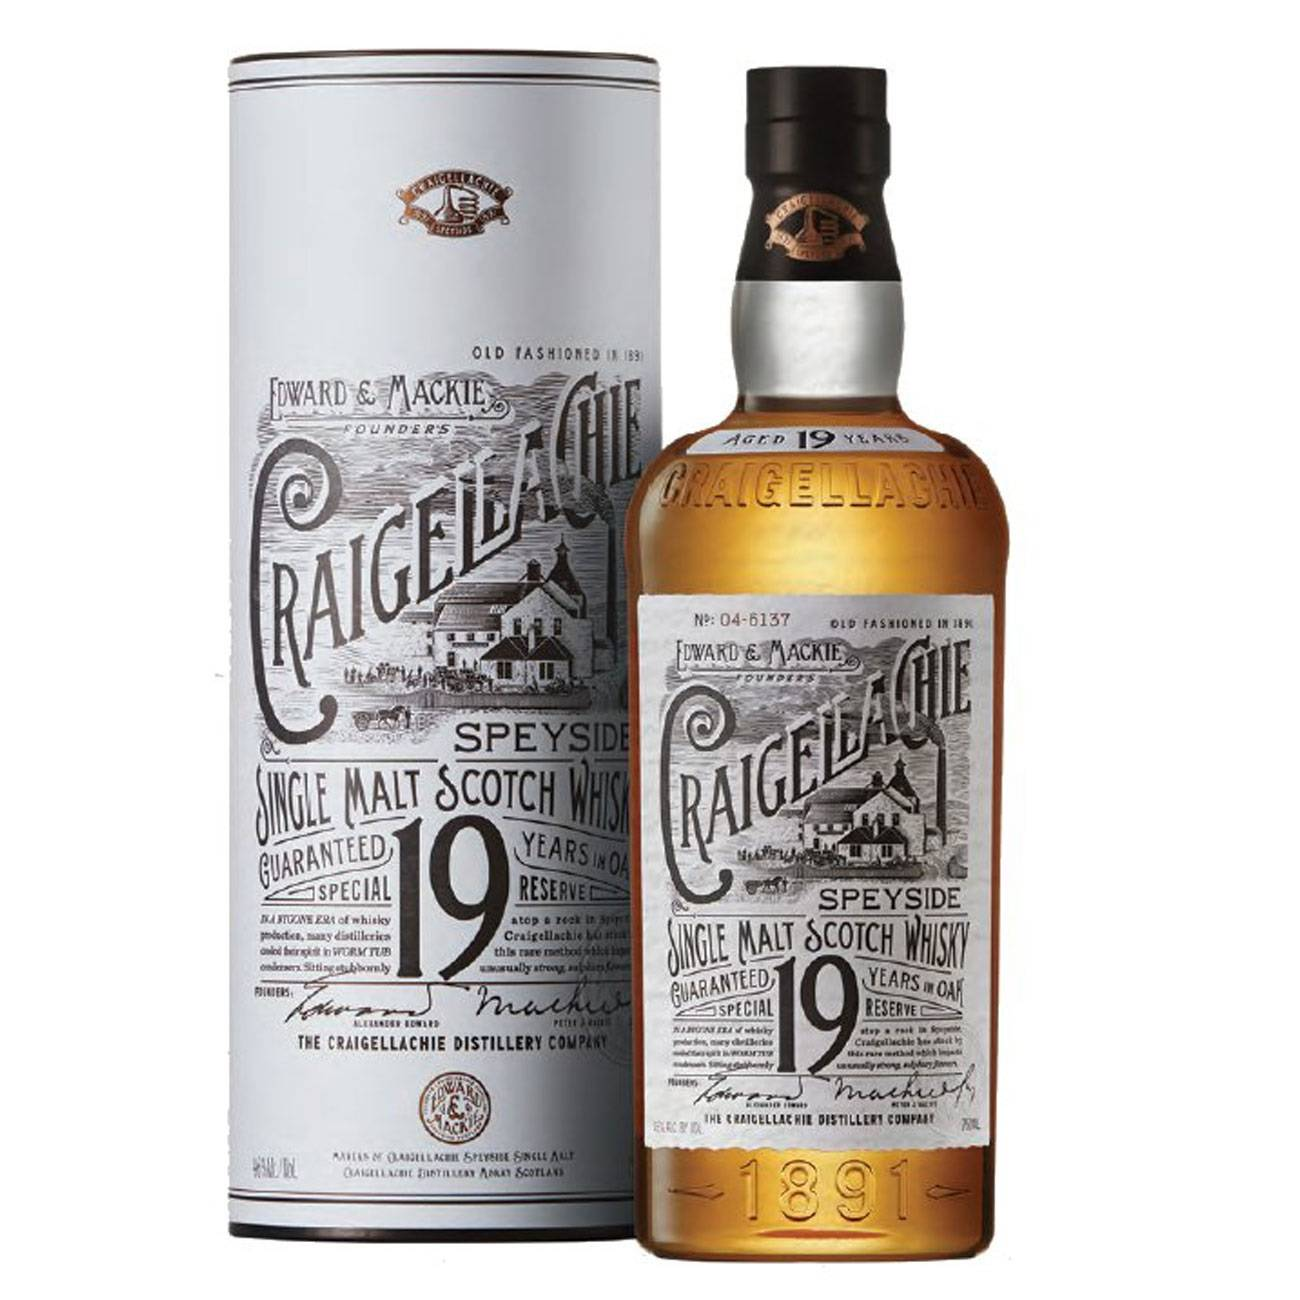 Whisky scotian, 19 Y SINGLE MALT 1000 Ml, Craigellachie